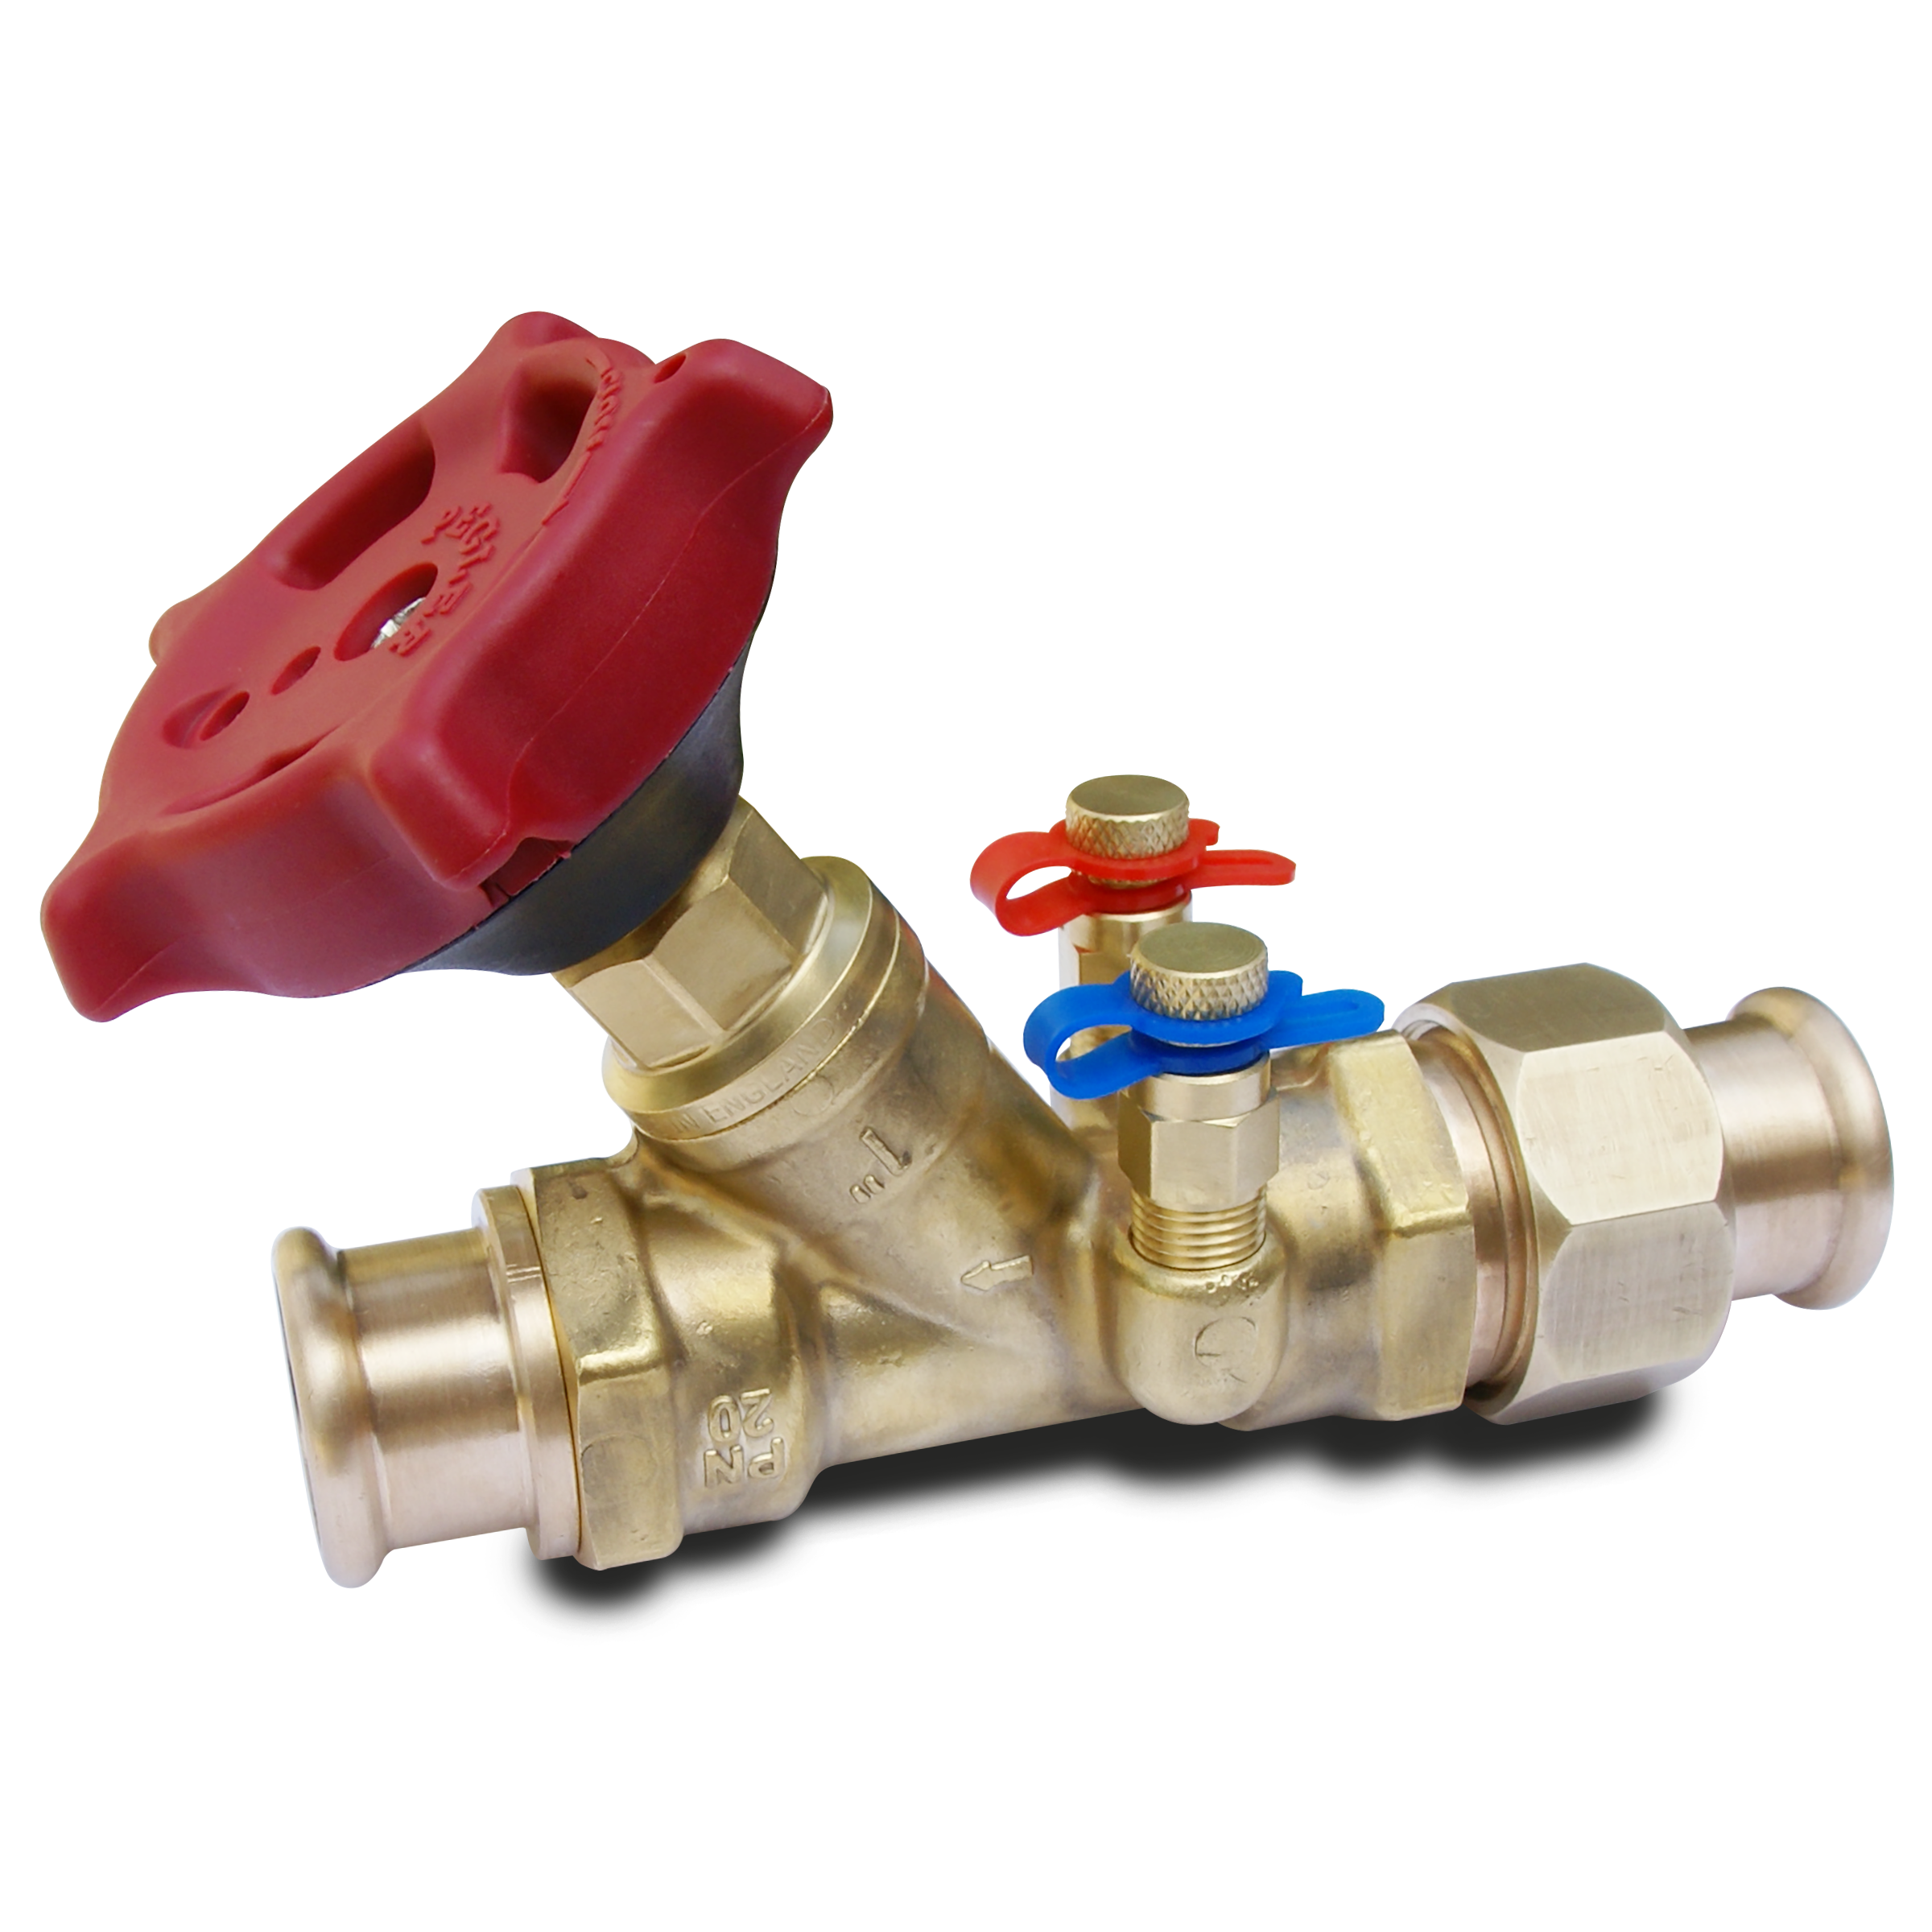 image for PSU1260 (inlet) Fixed Commissioning Valve